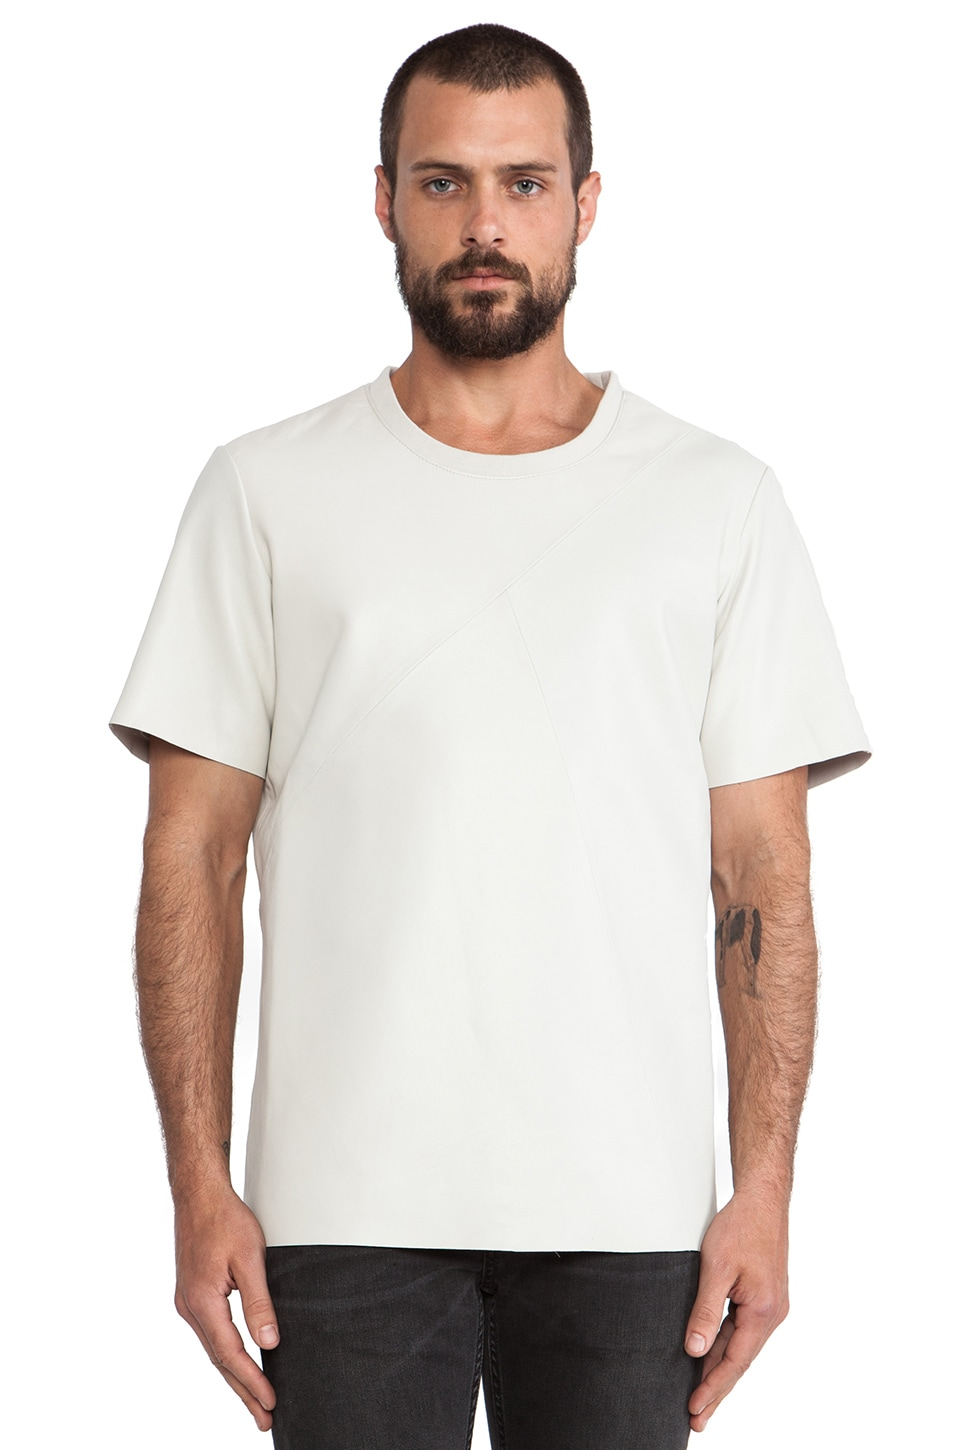 BLK DNM Leather T-Shirt 12 in Dust White